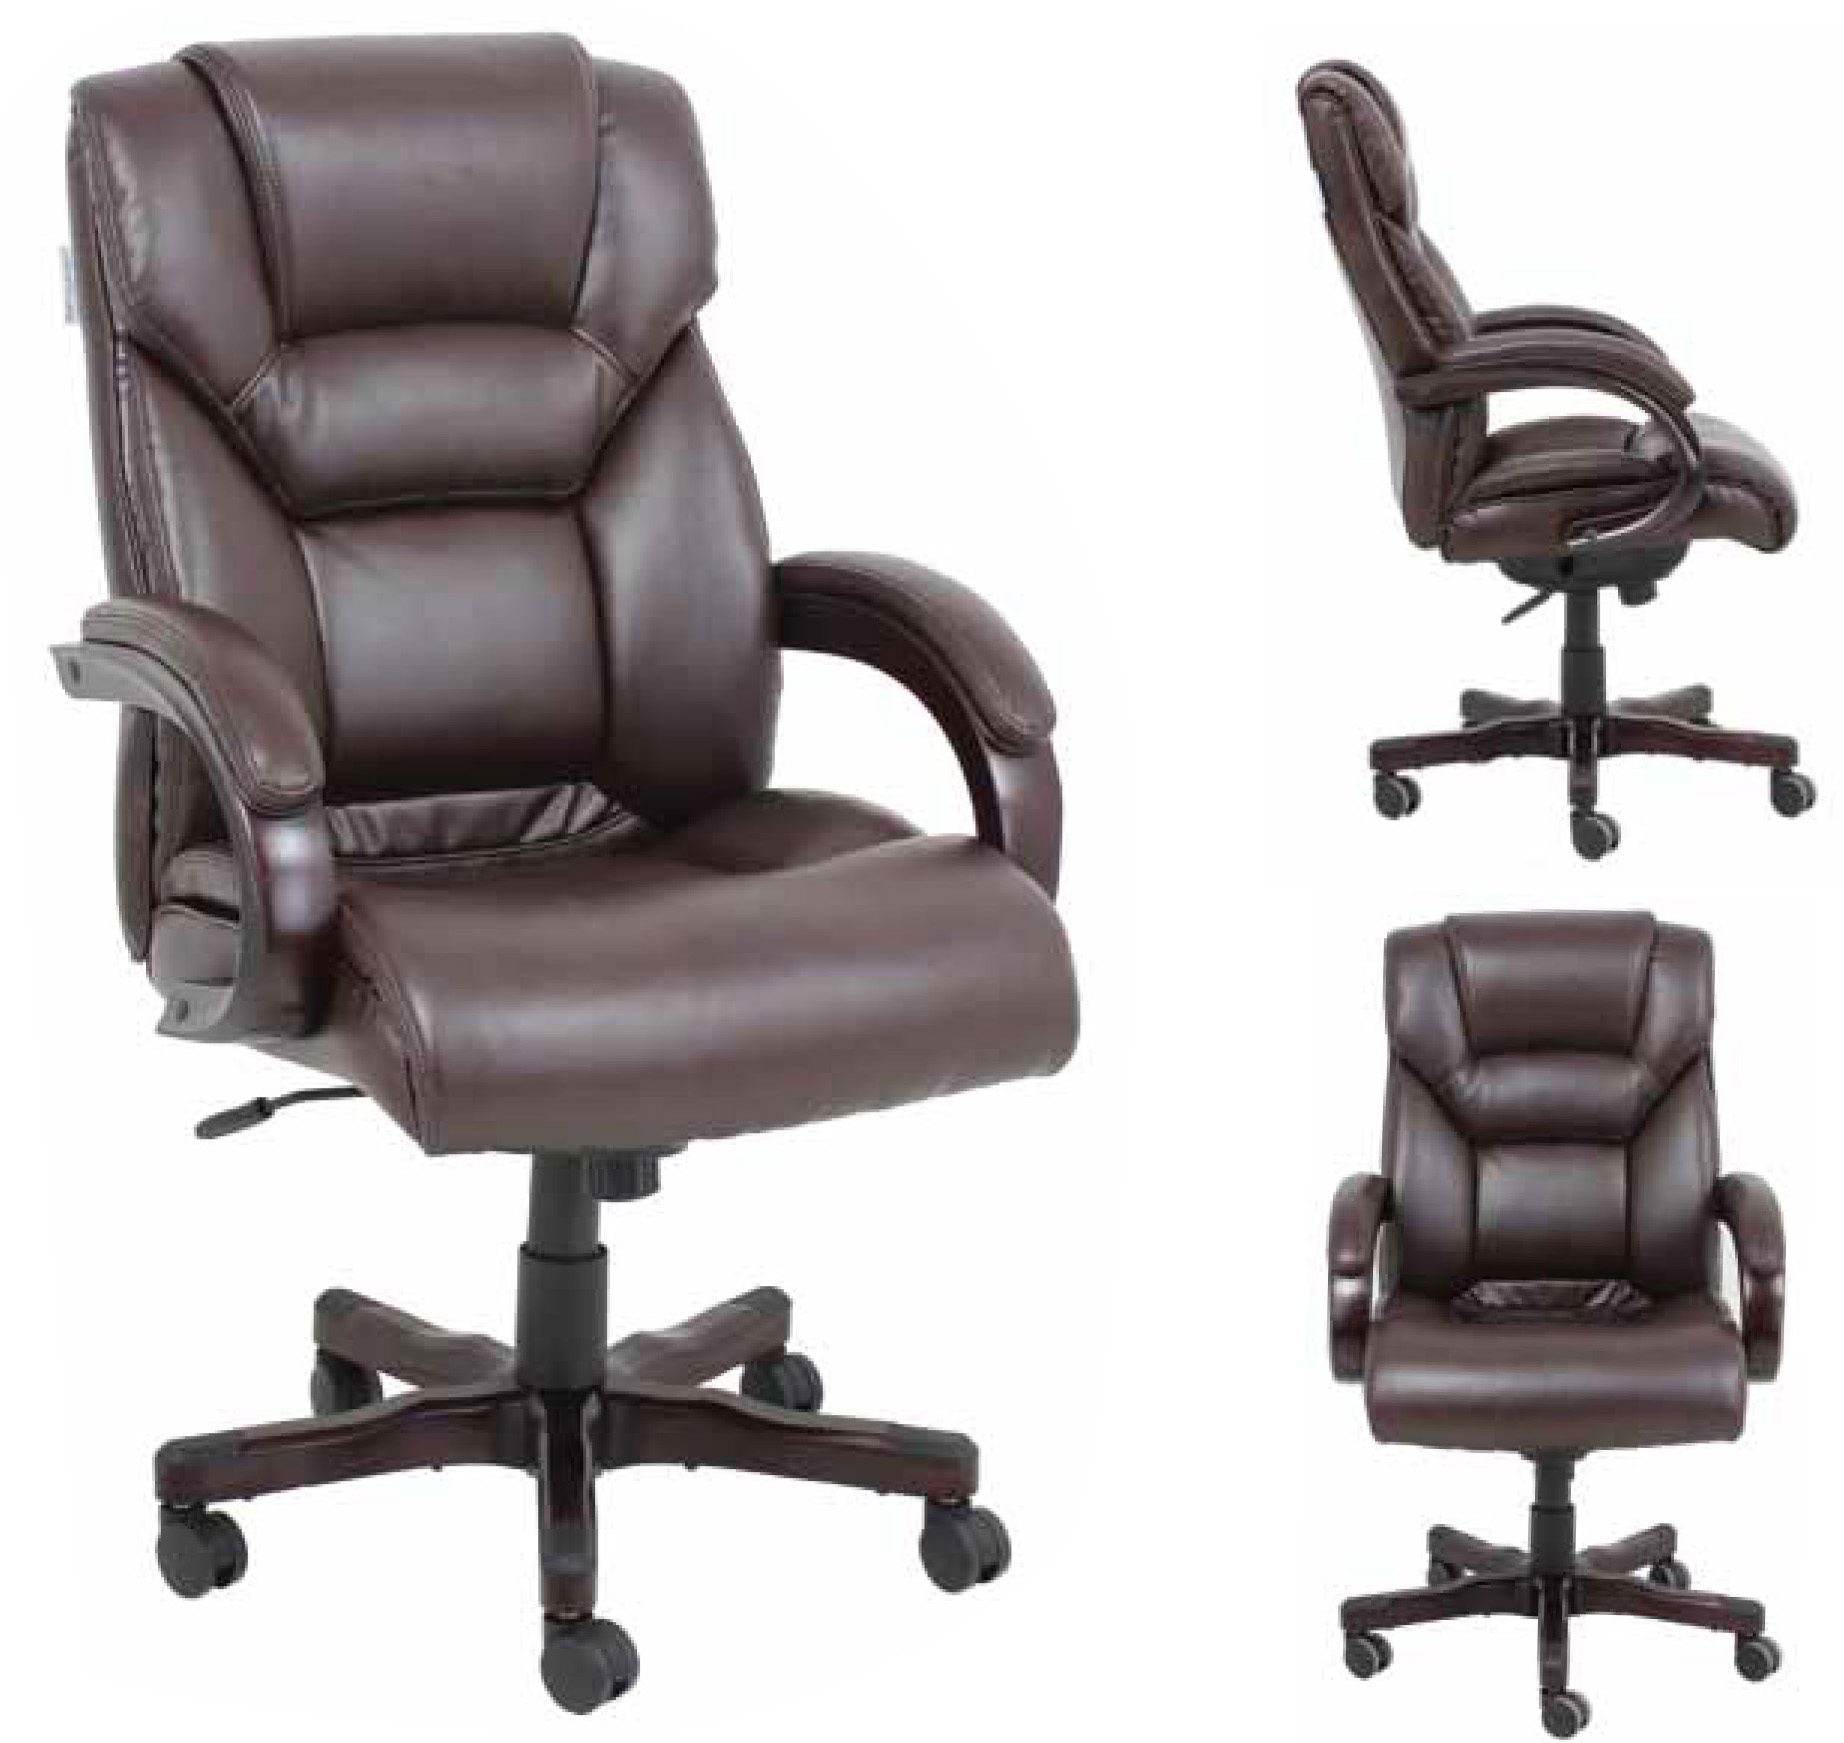 desk recliner chair brown leather butterfly barcalounger neptune ii home office